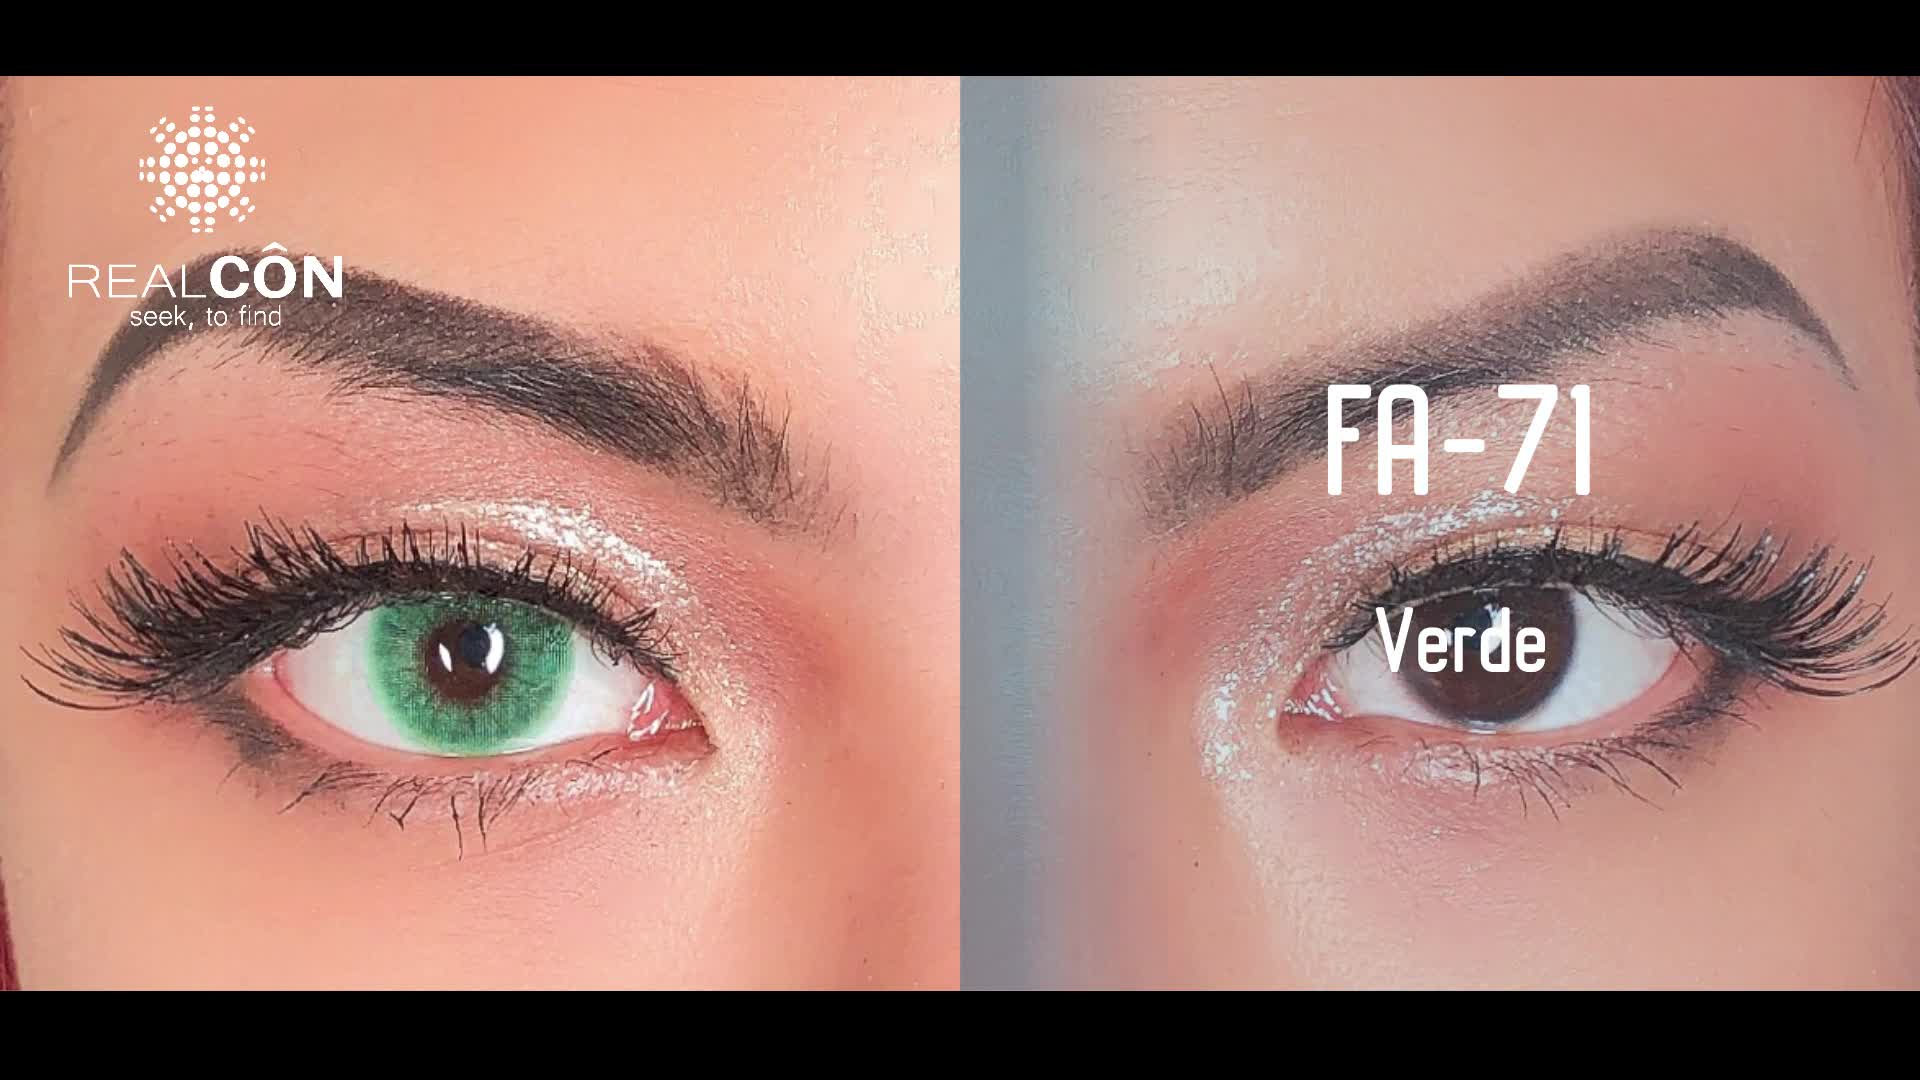 핫 잘 팔리는 natural color contact lens super natural 13 색 contact 렌즈로 구성 natural color lentes 드 contacto